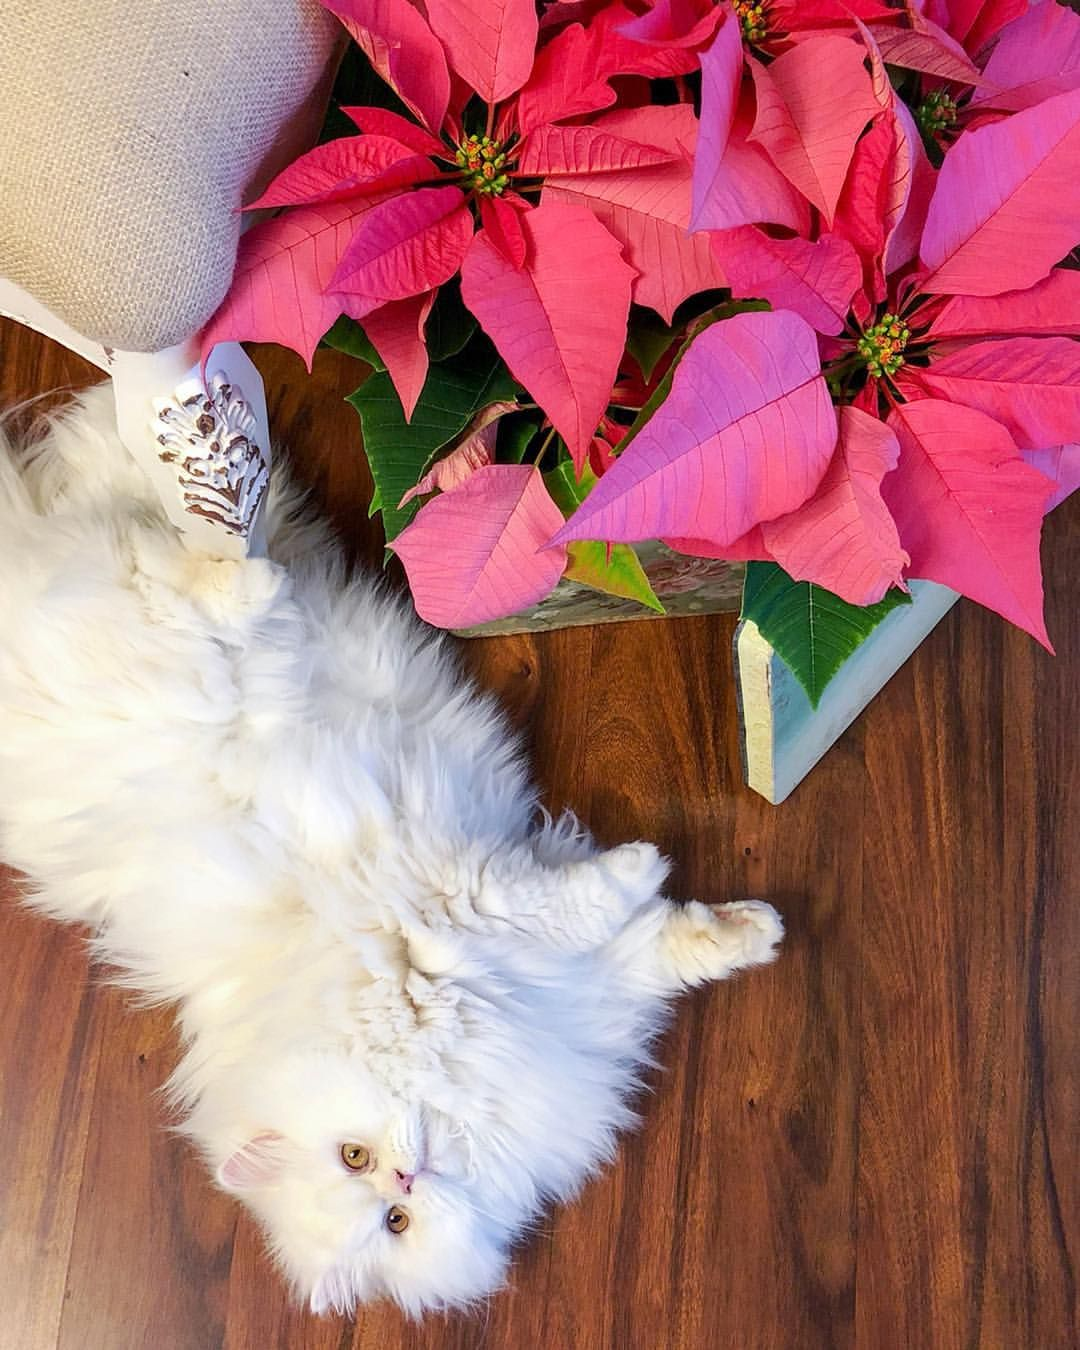 Dollface Persian cat with pink poinsettias